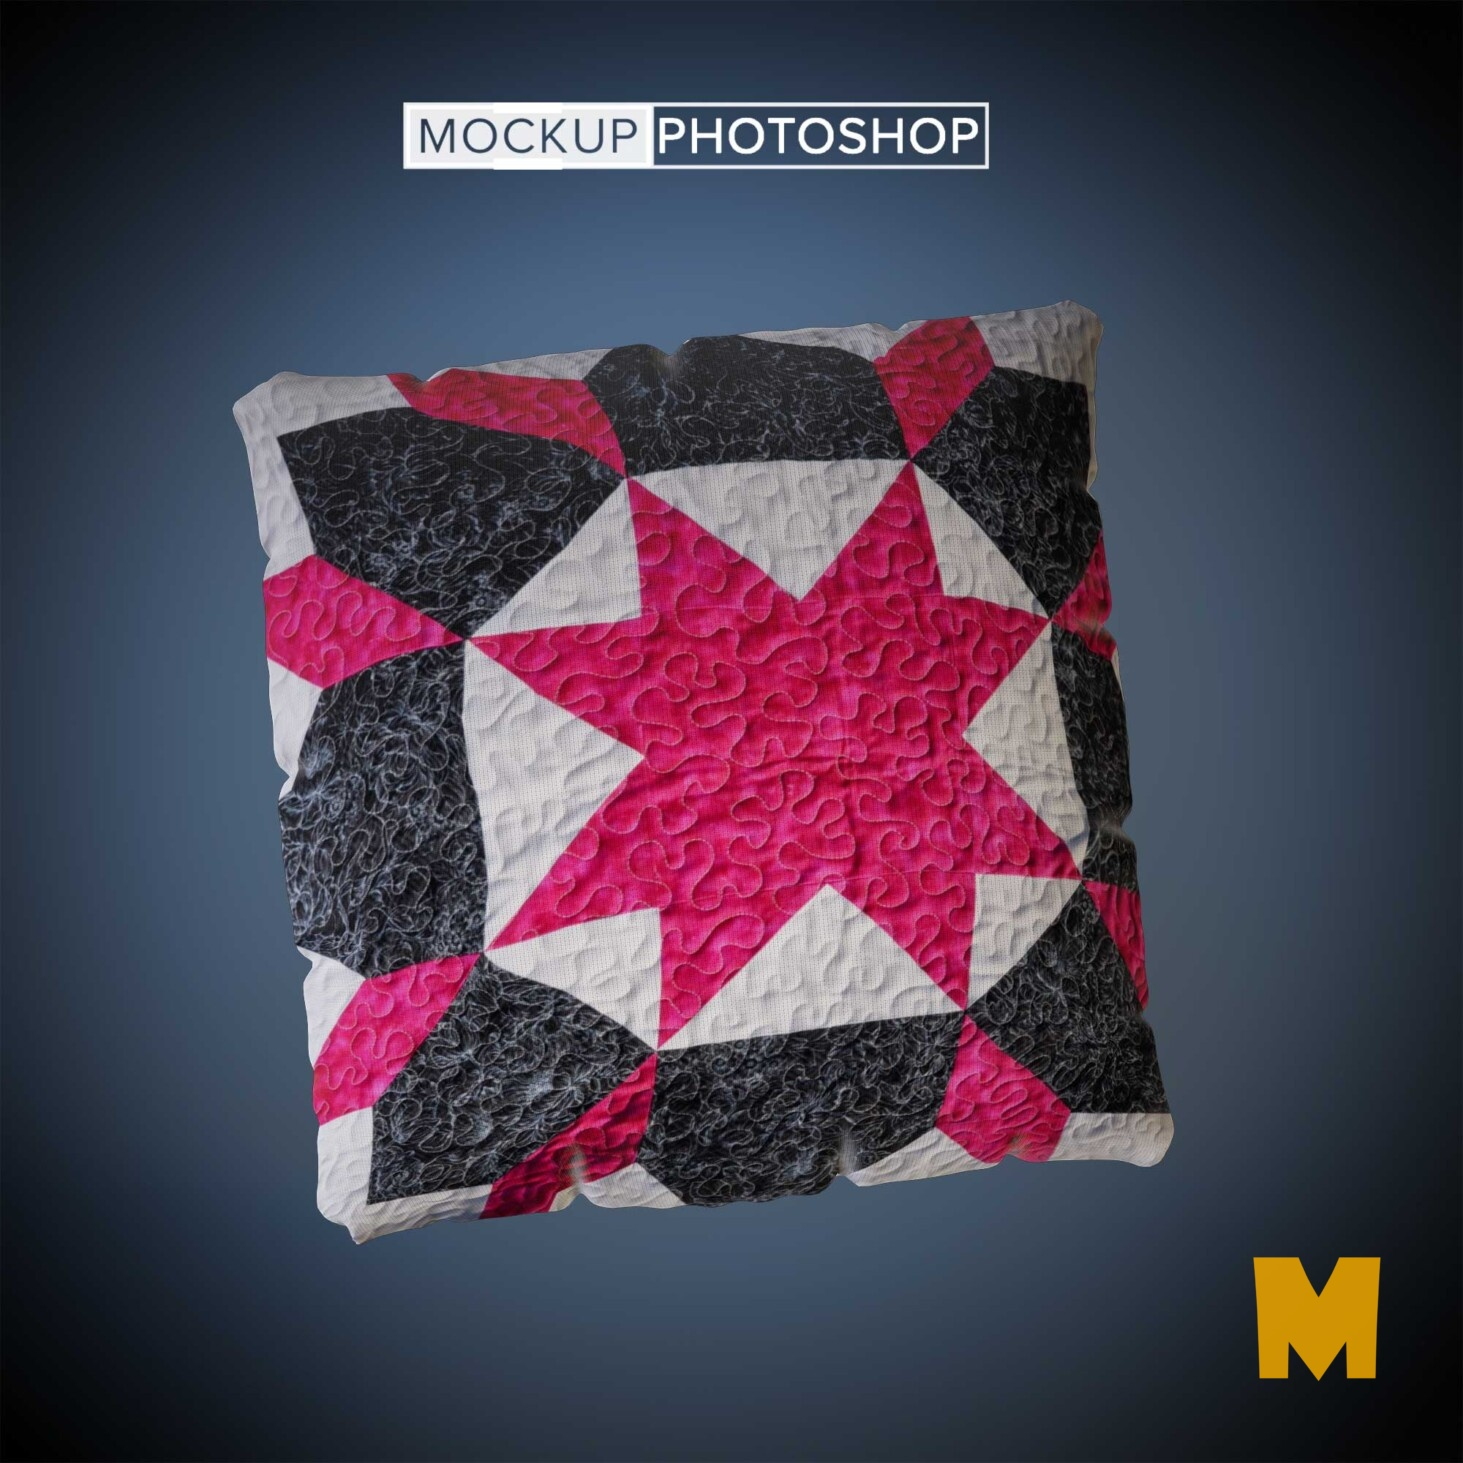 Colorful Pillows Mockup